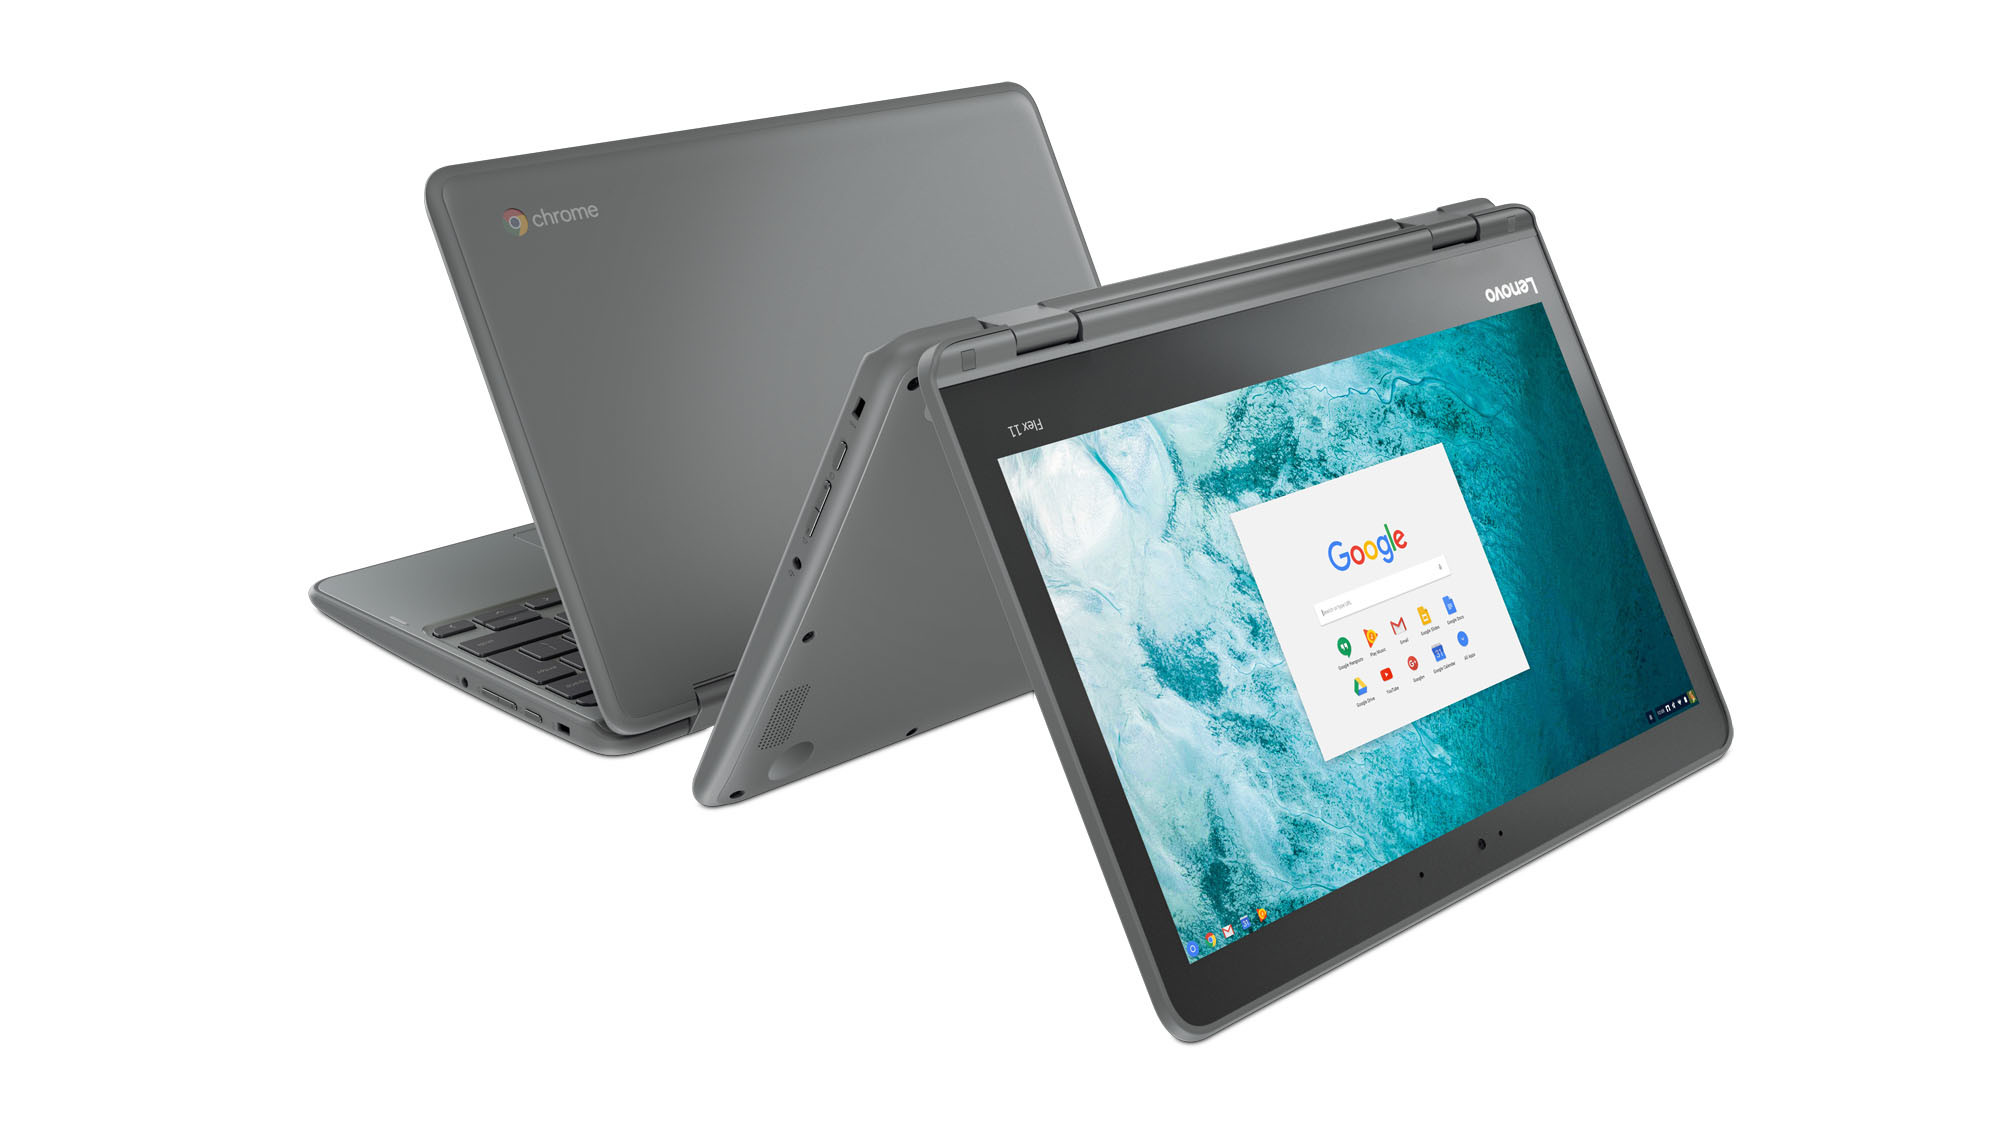 Lenovo announces the Flex 11, a 360-degree convertible Chromebook